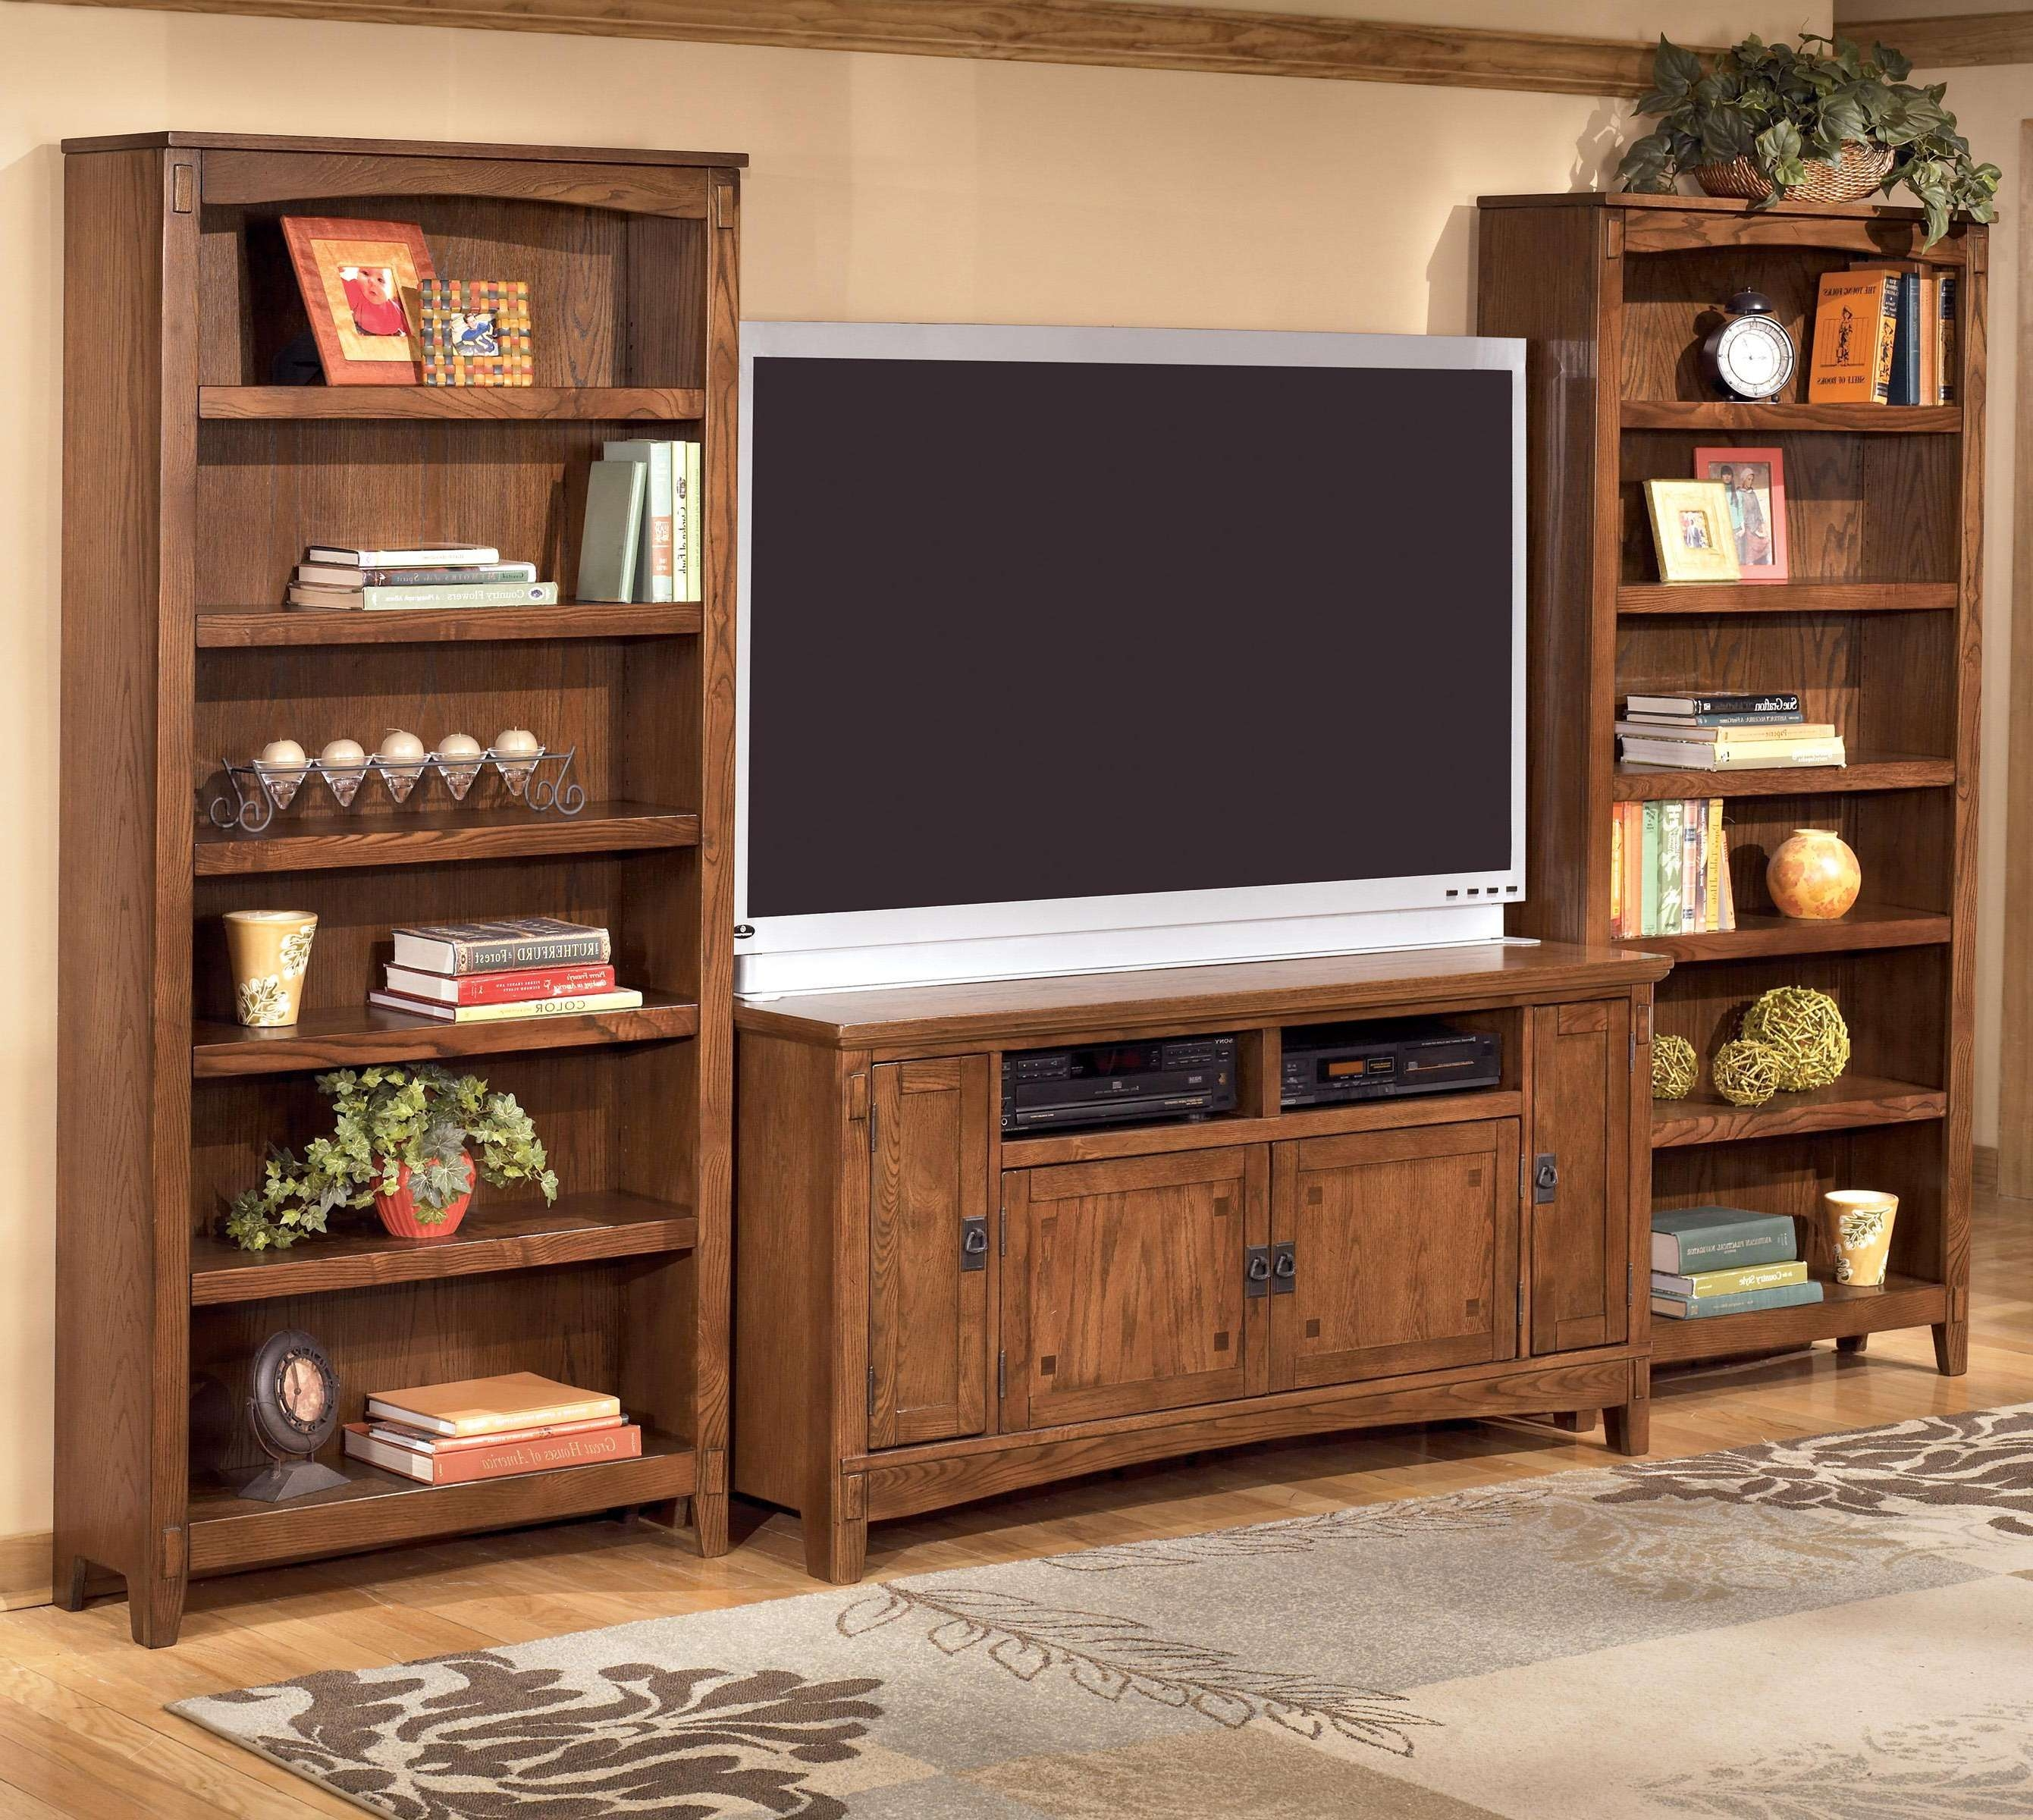 60 Inch Tv Stand & 2 Large Bookcasesashley Furniture | Wolf For Tv Cabinets And Bookcase (View 2 of 20)